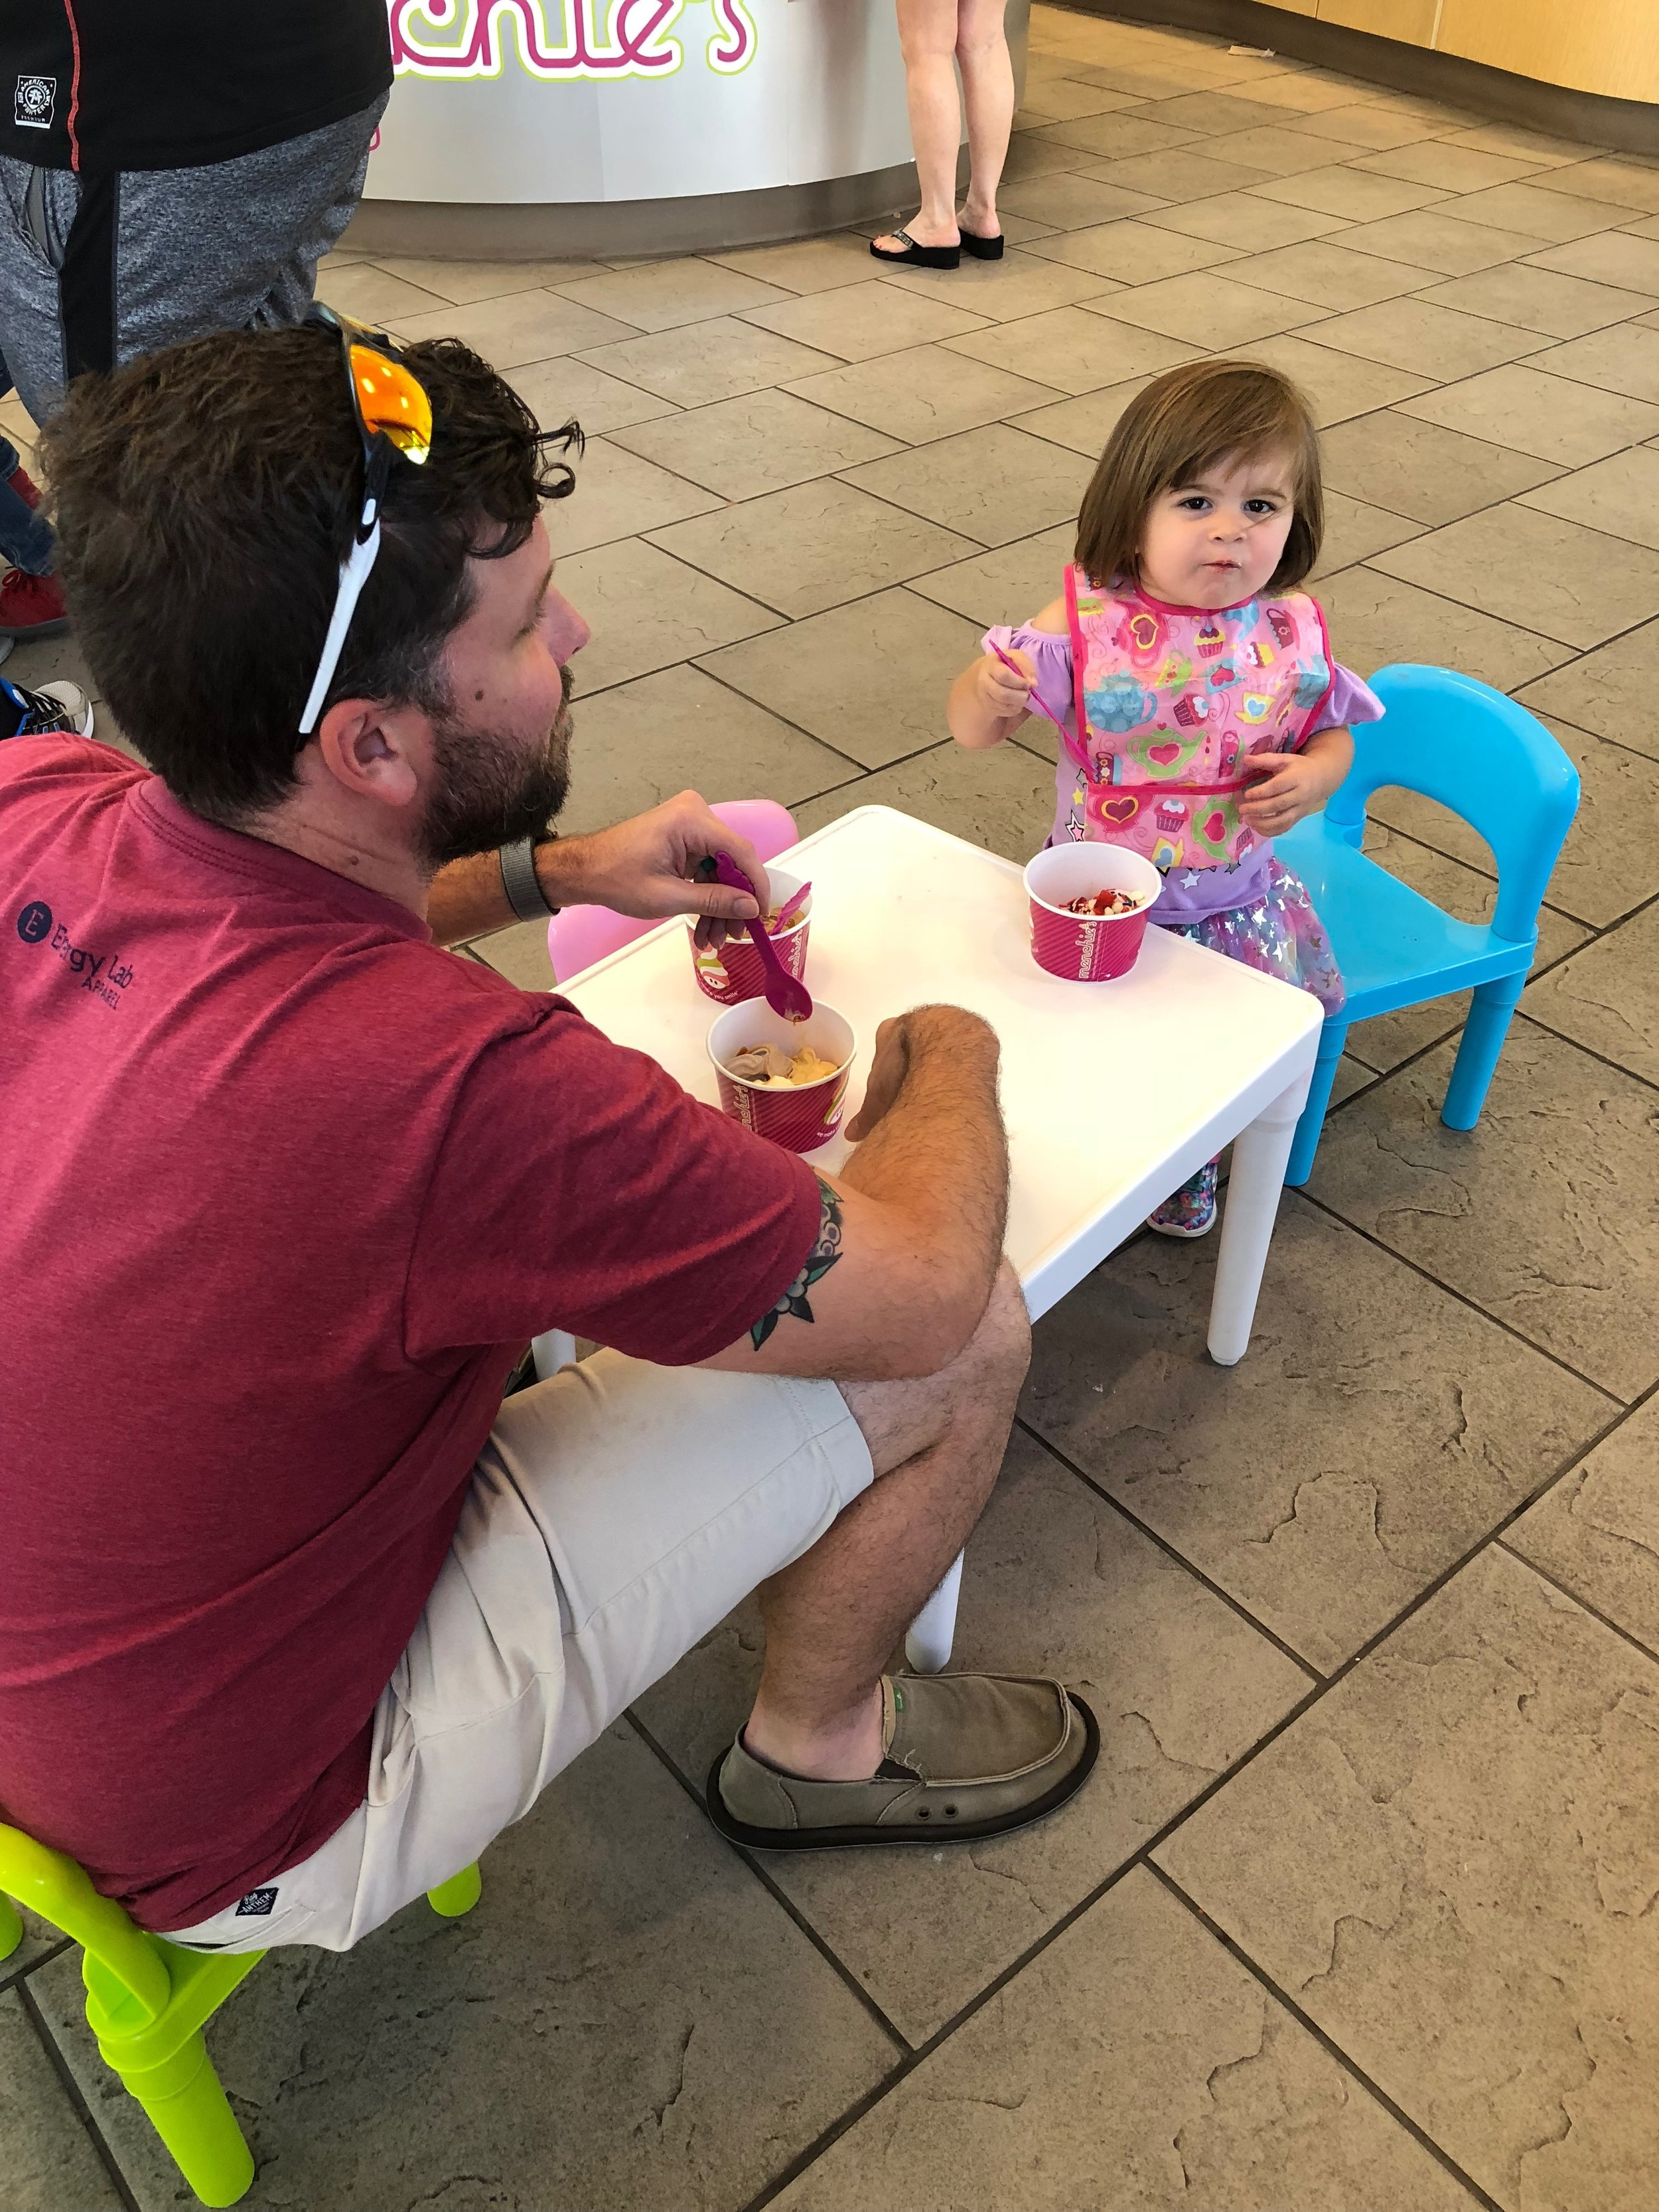 Celebratory post-race froyo with my loves. (Also, I'm so lucky this guy is behind the camera most of the time, because he is so clearly talented and I clearly am not in that arena. :) )